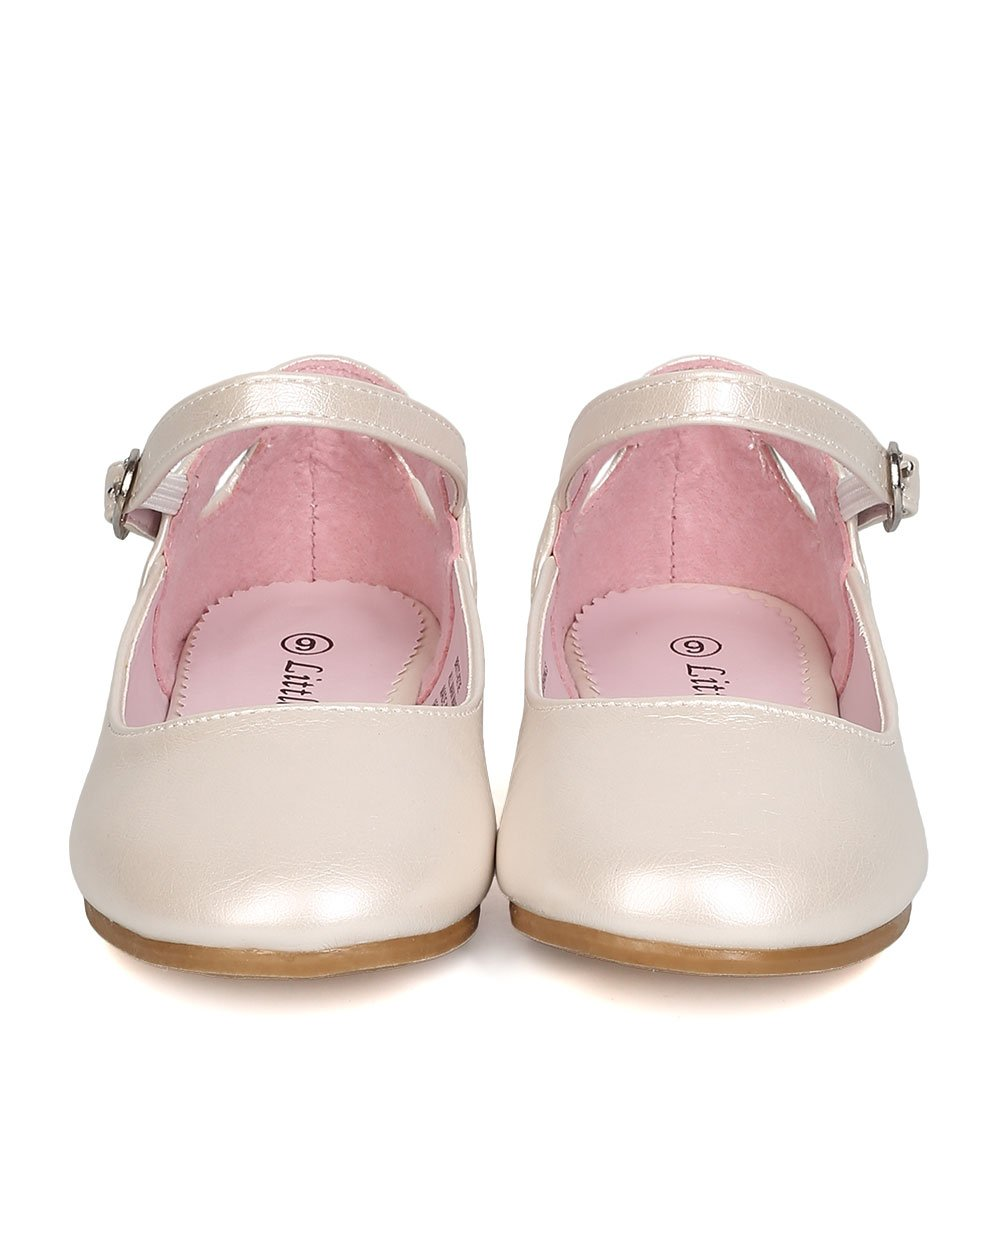 Girls Leatherette Ankle Strap Cut Out Ballet Flat GB42 - Ivory (Size: Little Kid 1) by Little Angel (Image #4)